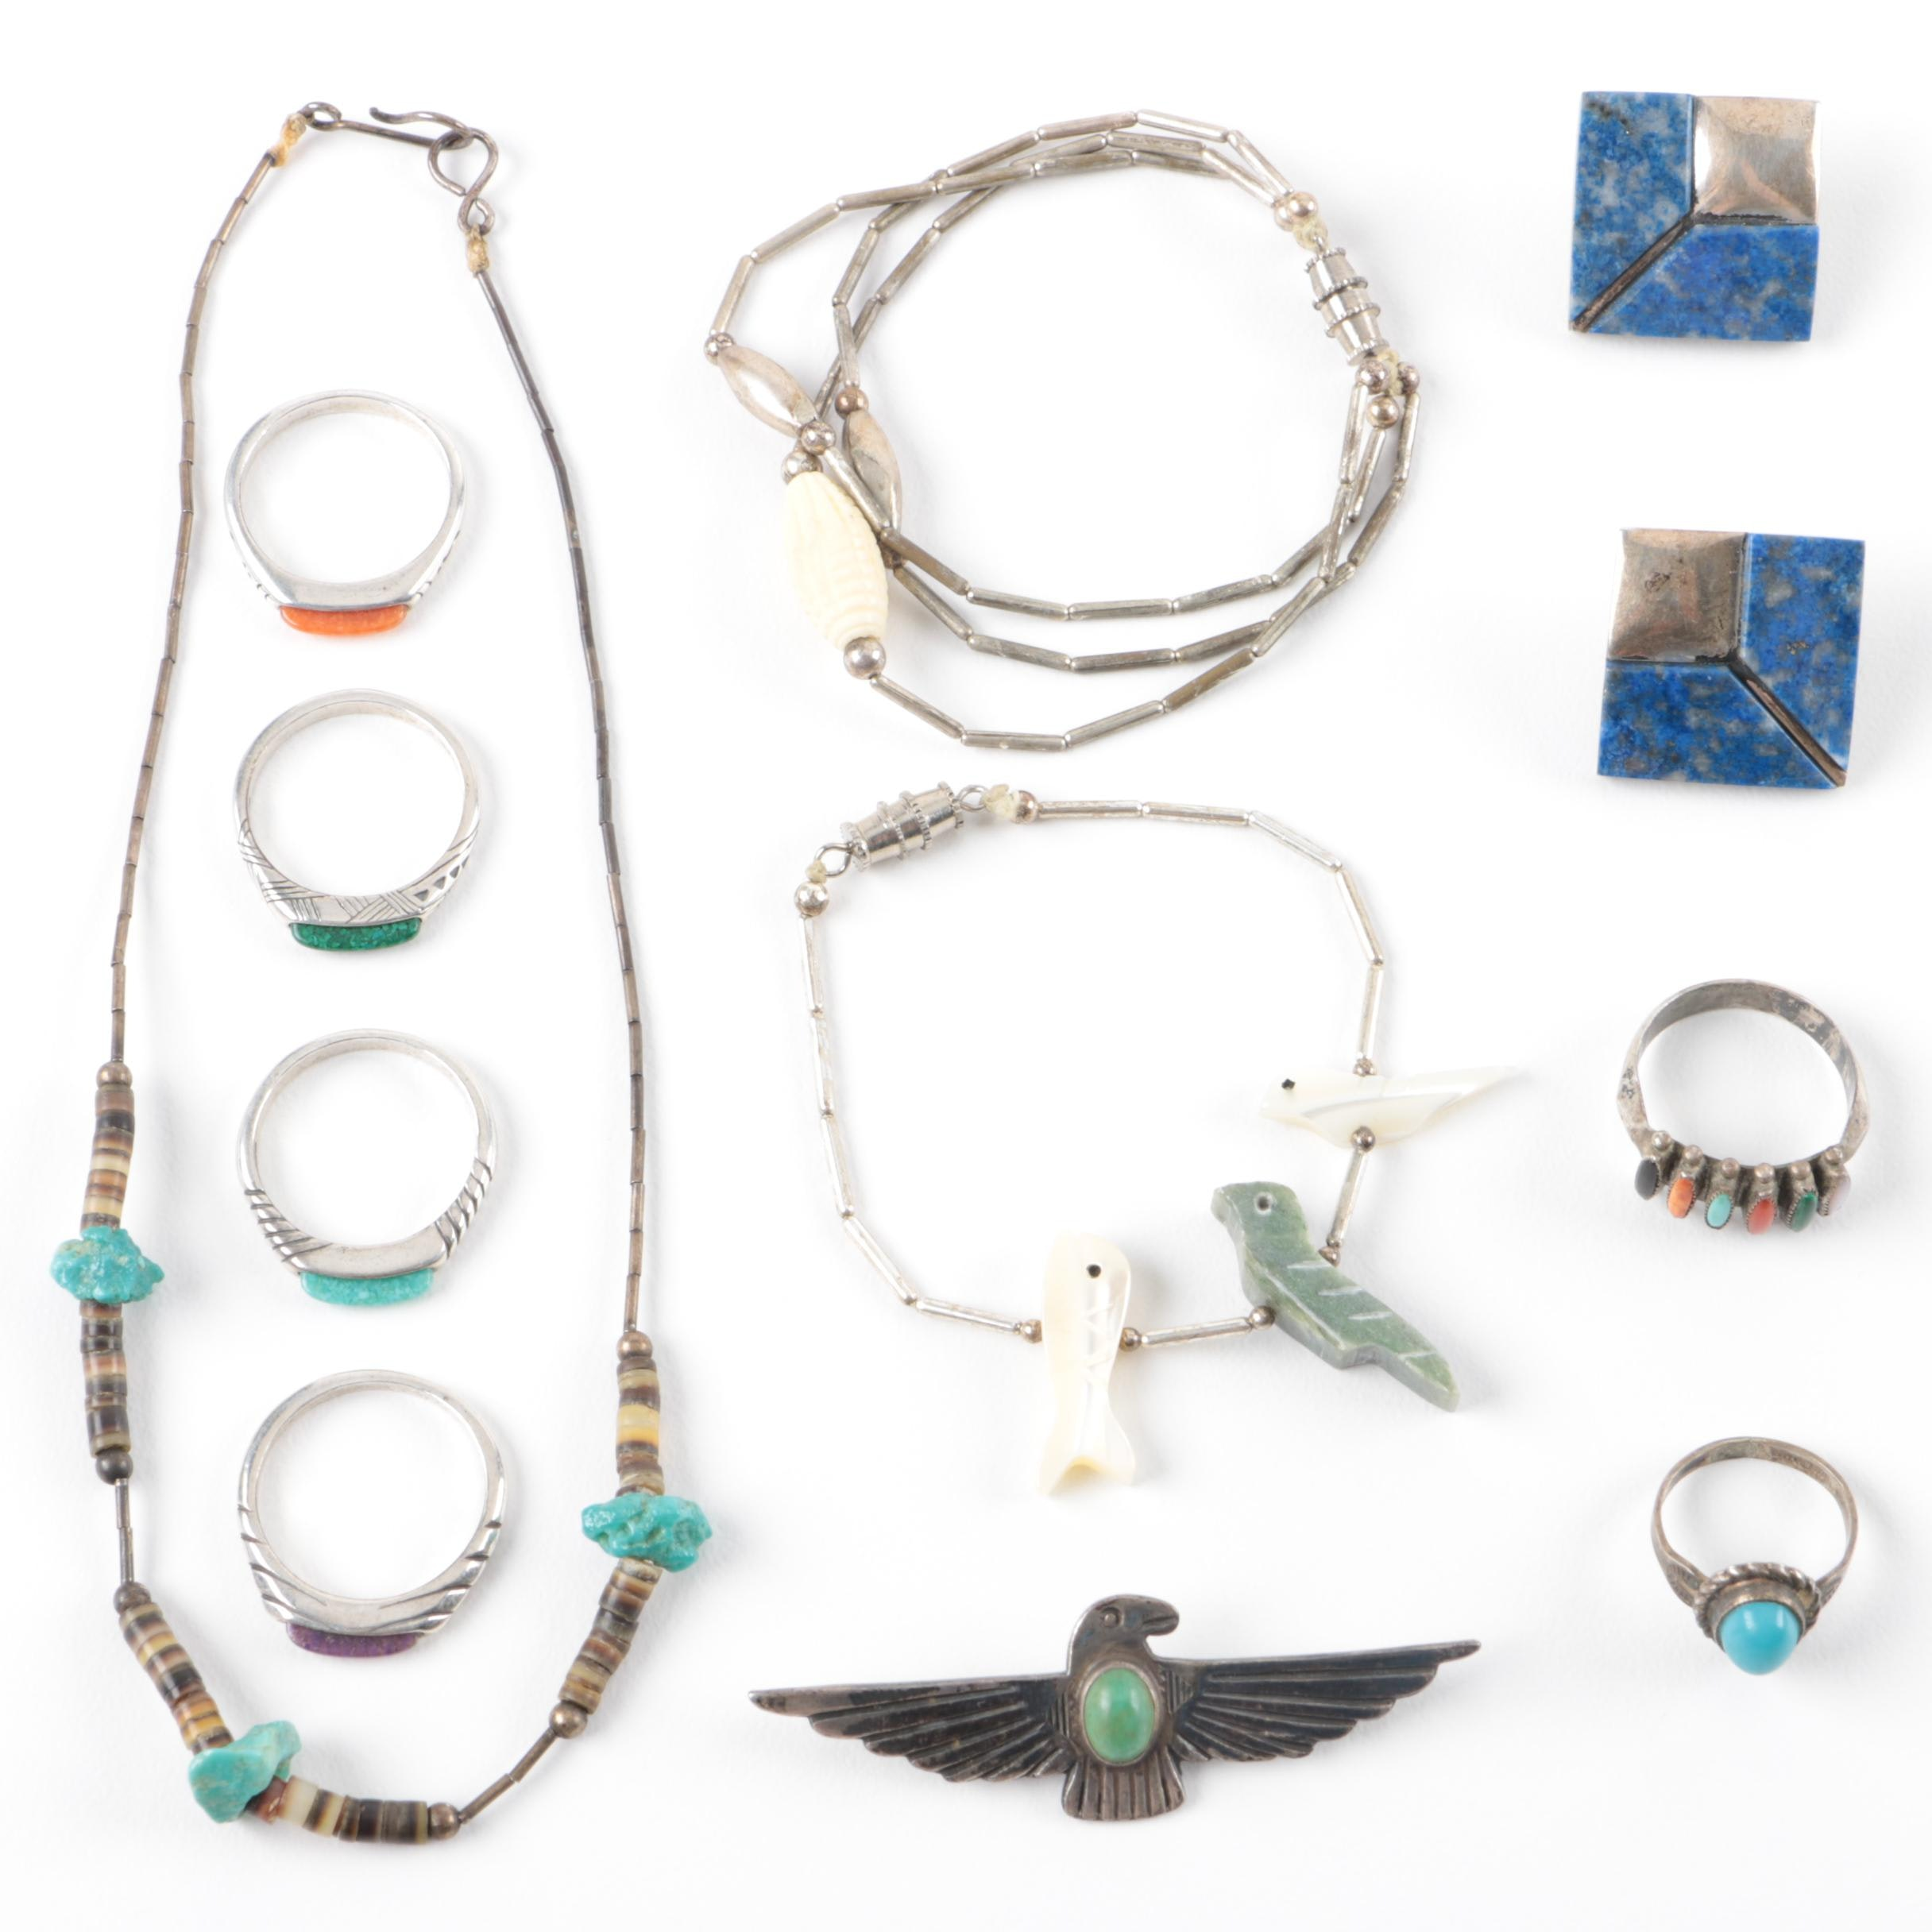 Collection of Jewelry Including Sterling Silver, Lapis, and More